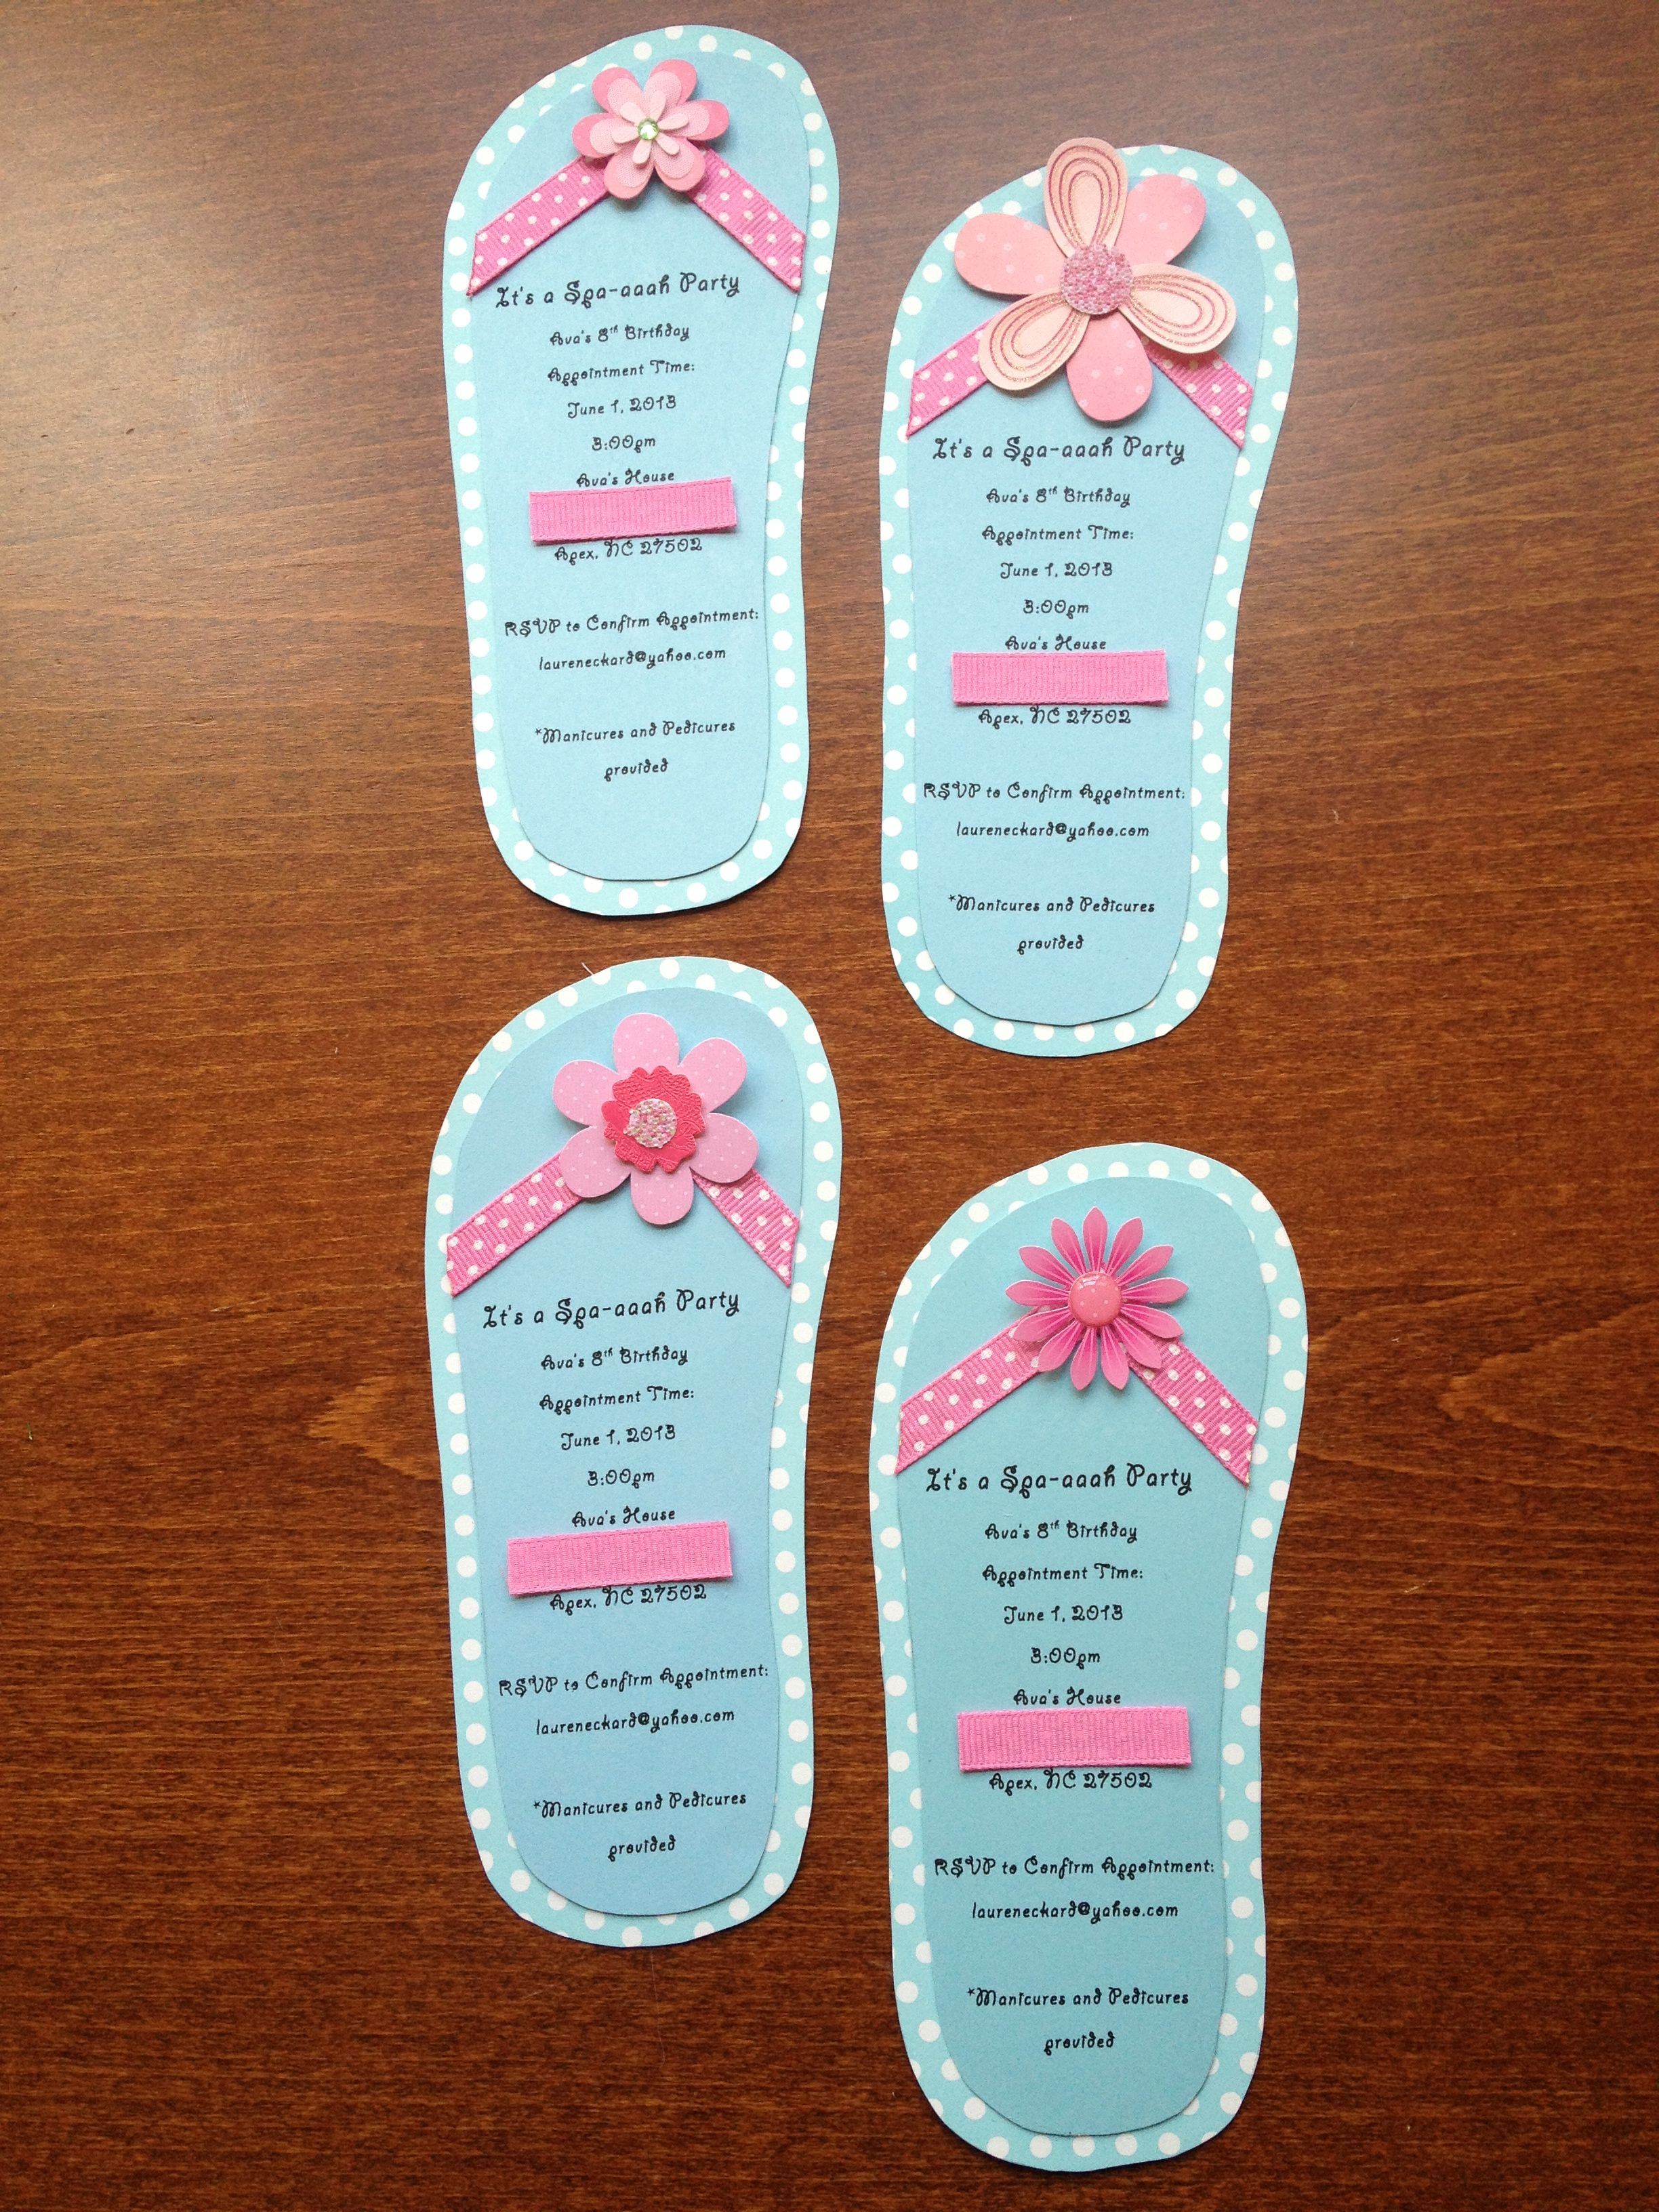 Photo of Hand-Crafted Birthday Party Invitation (It's a Spa-aaah Party) Ava's 8th Birthda…